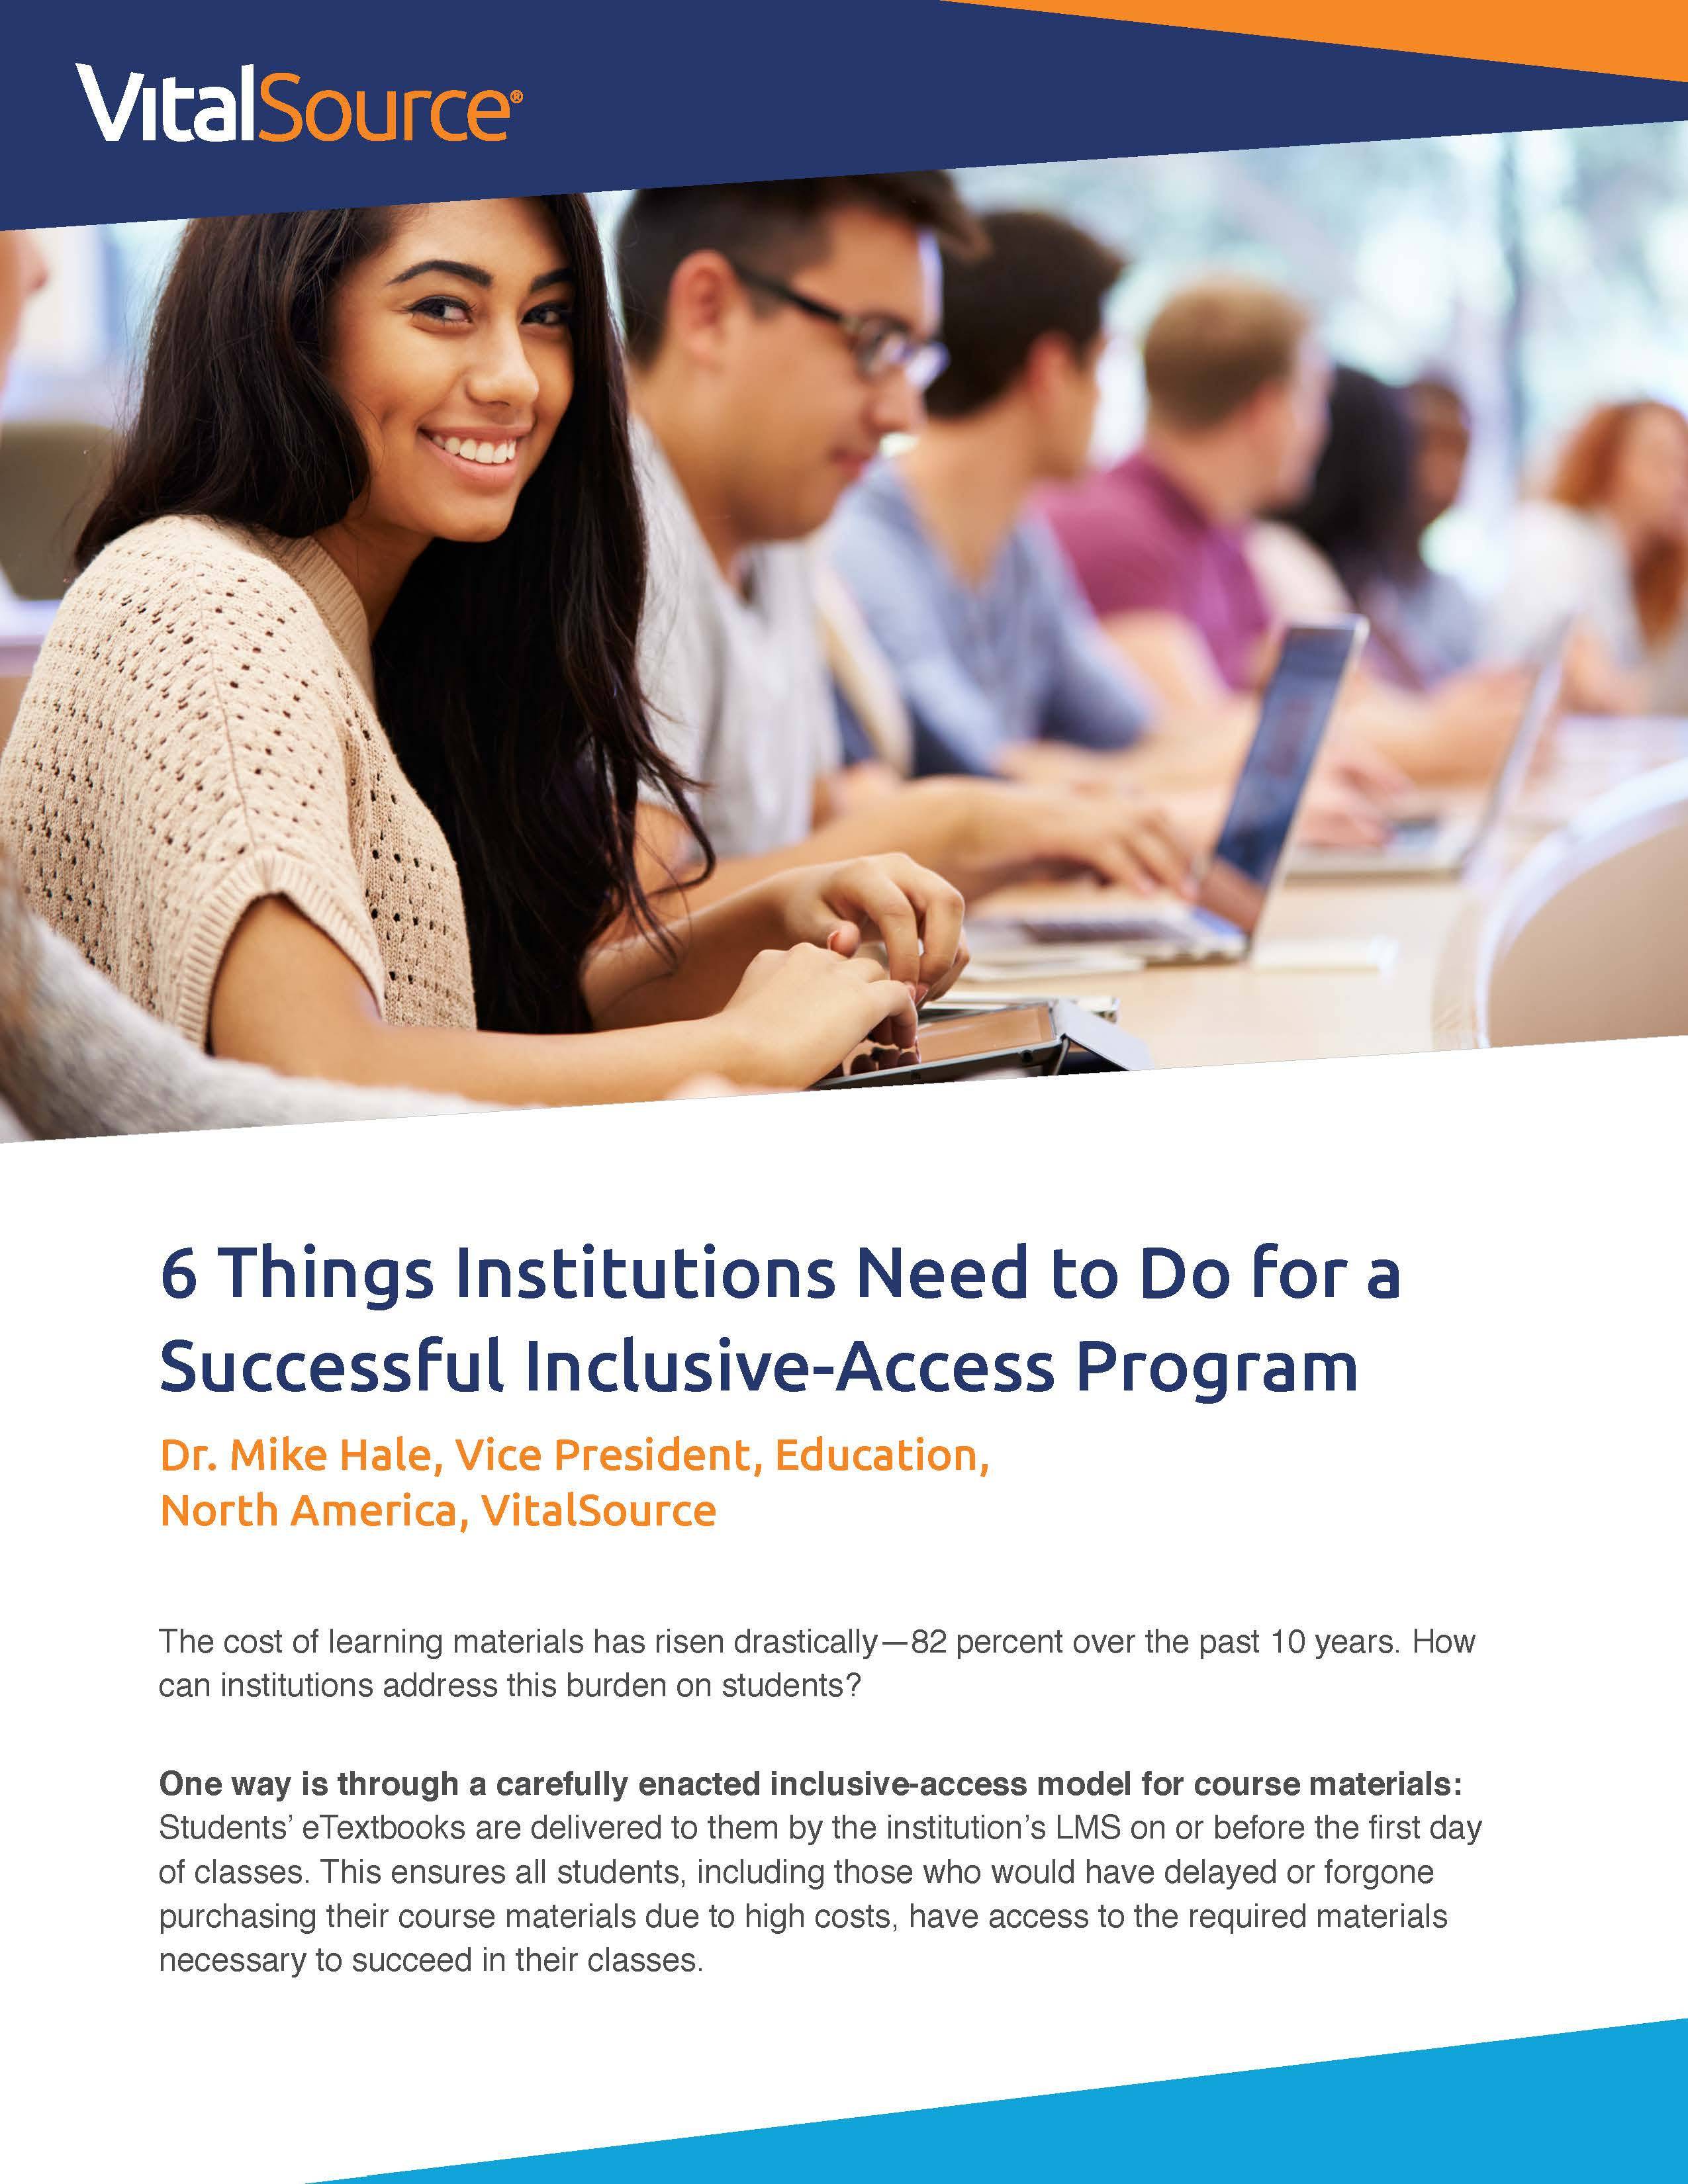 6 Things Institutions Need to Do for a Successful Inclusive-Access Program